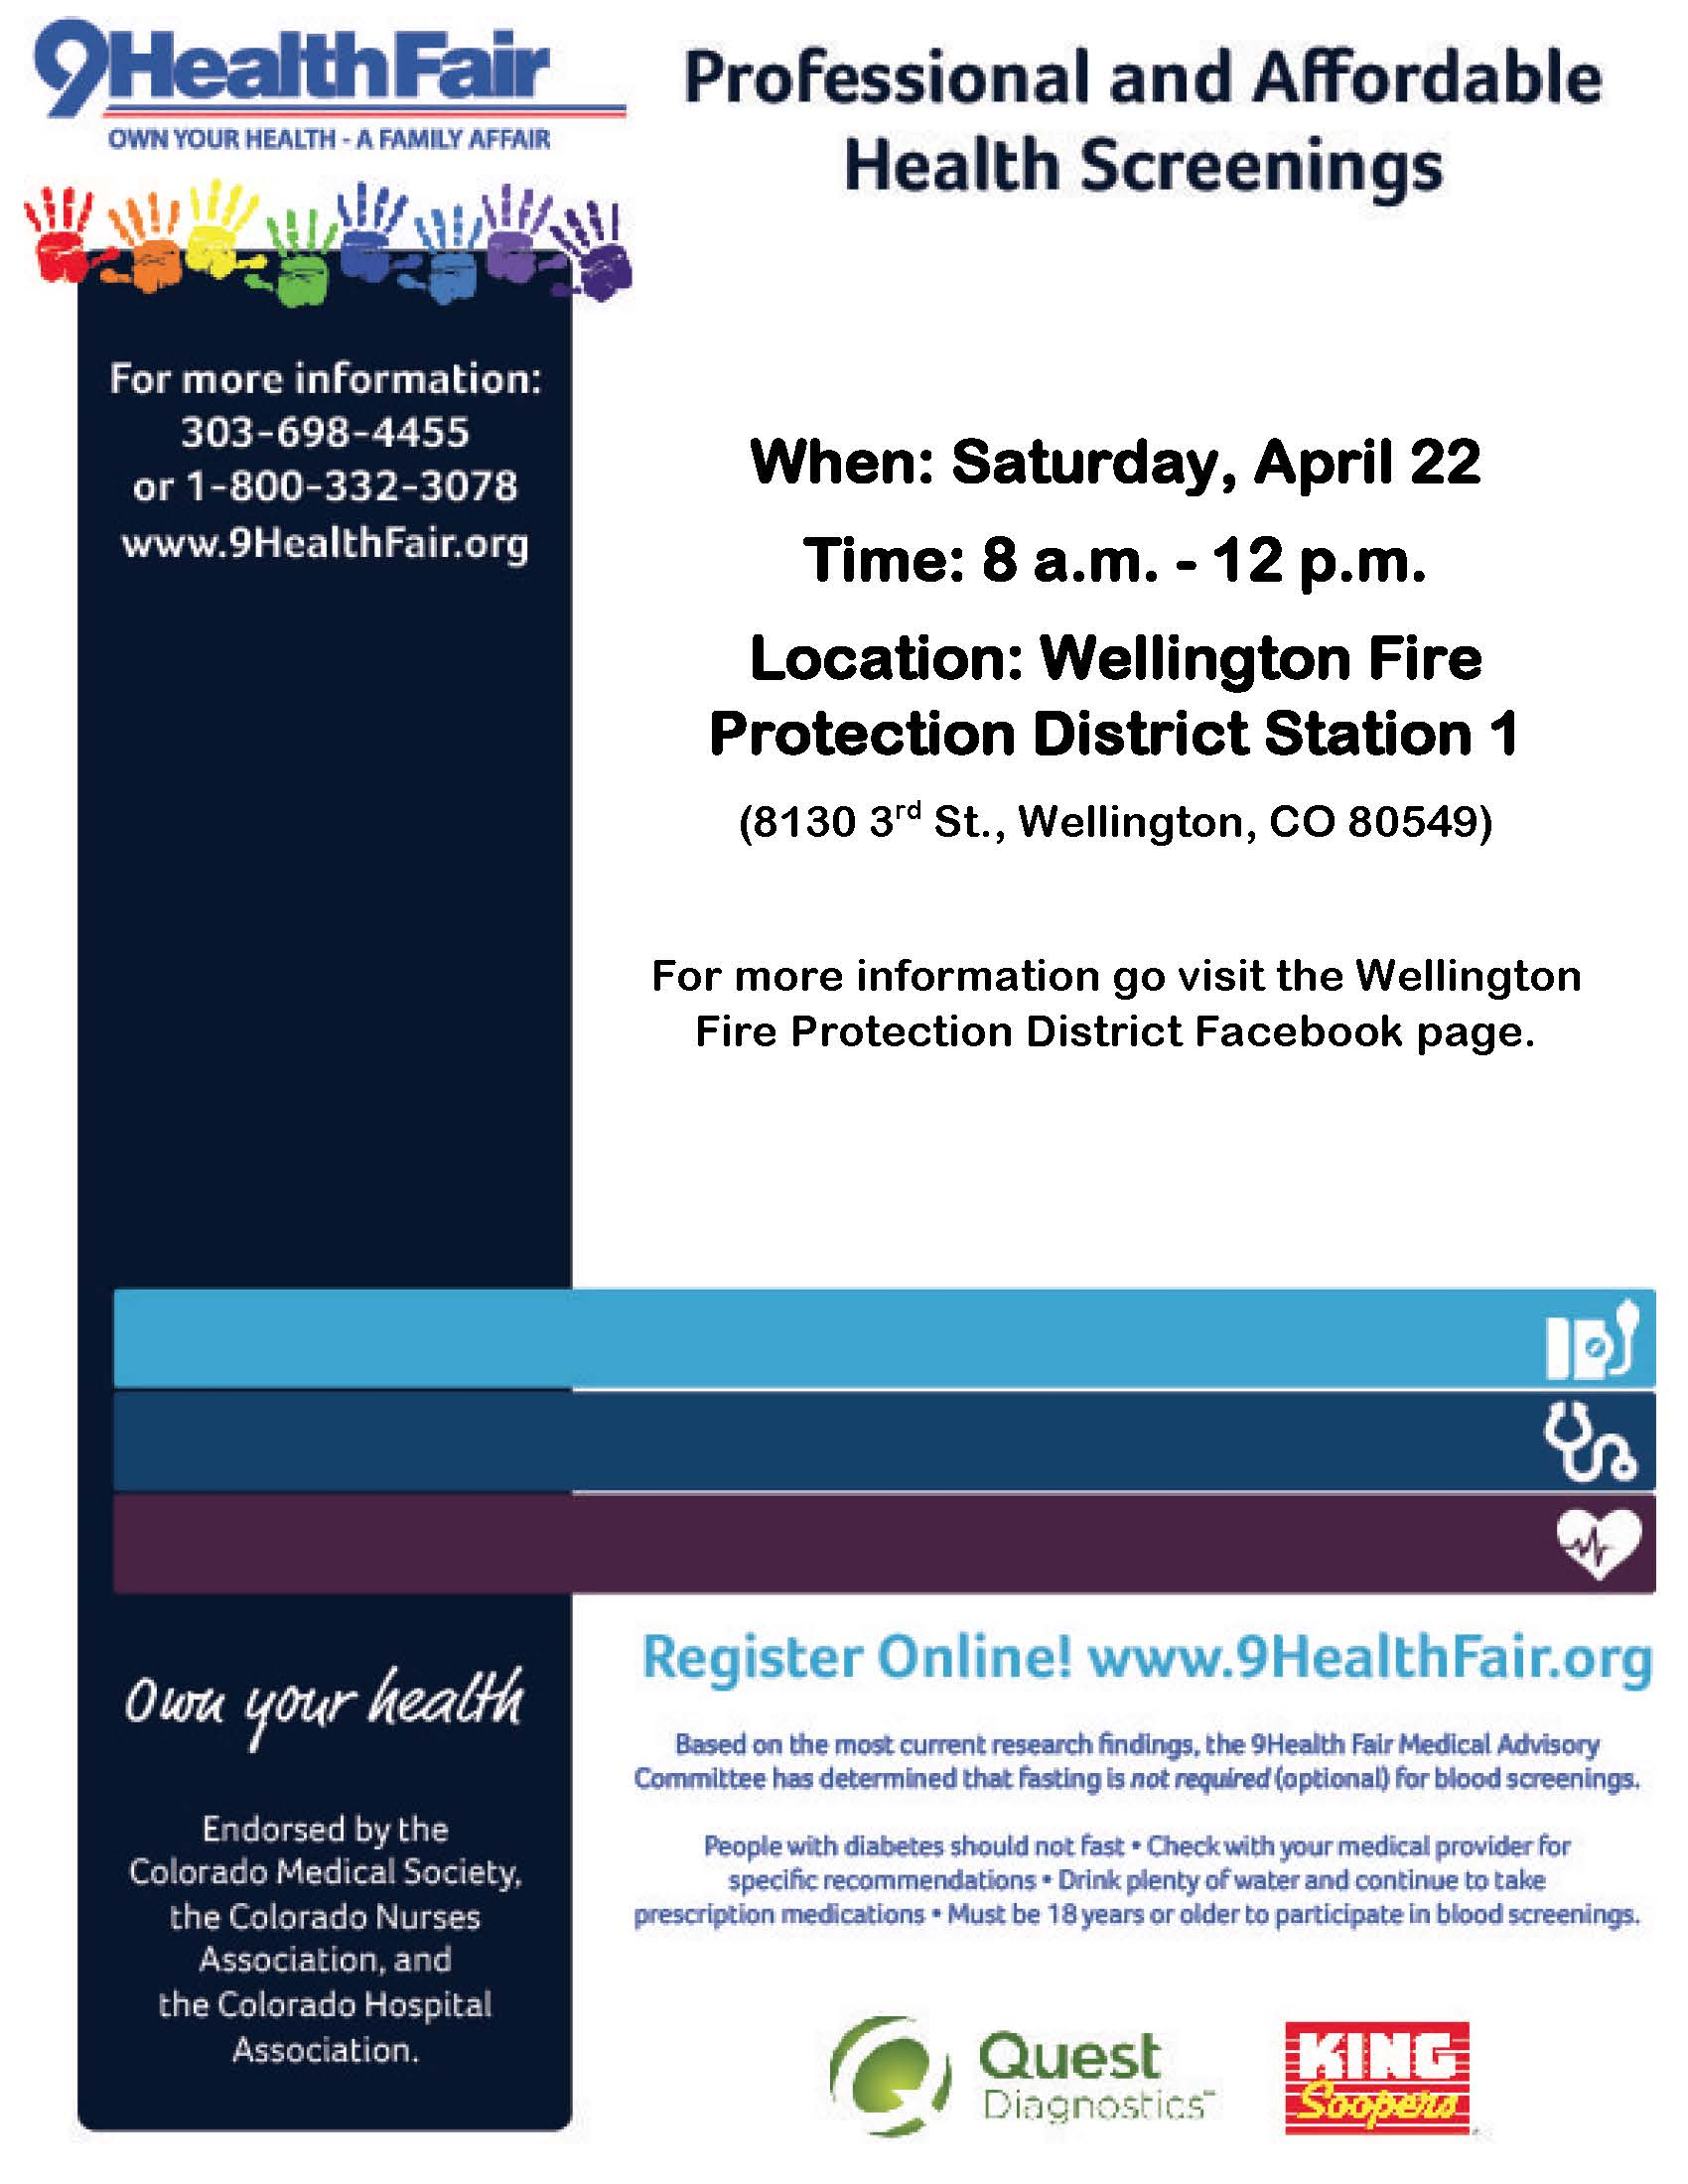 WFPD 9Health Fair Flyer